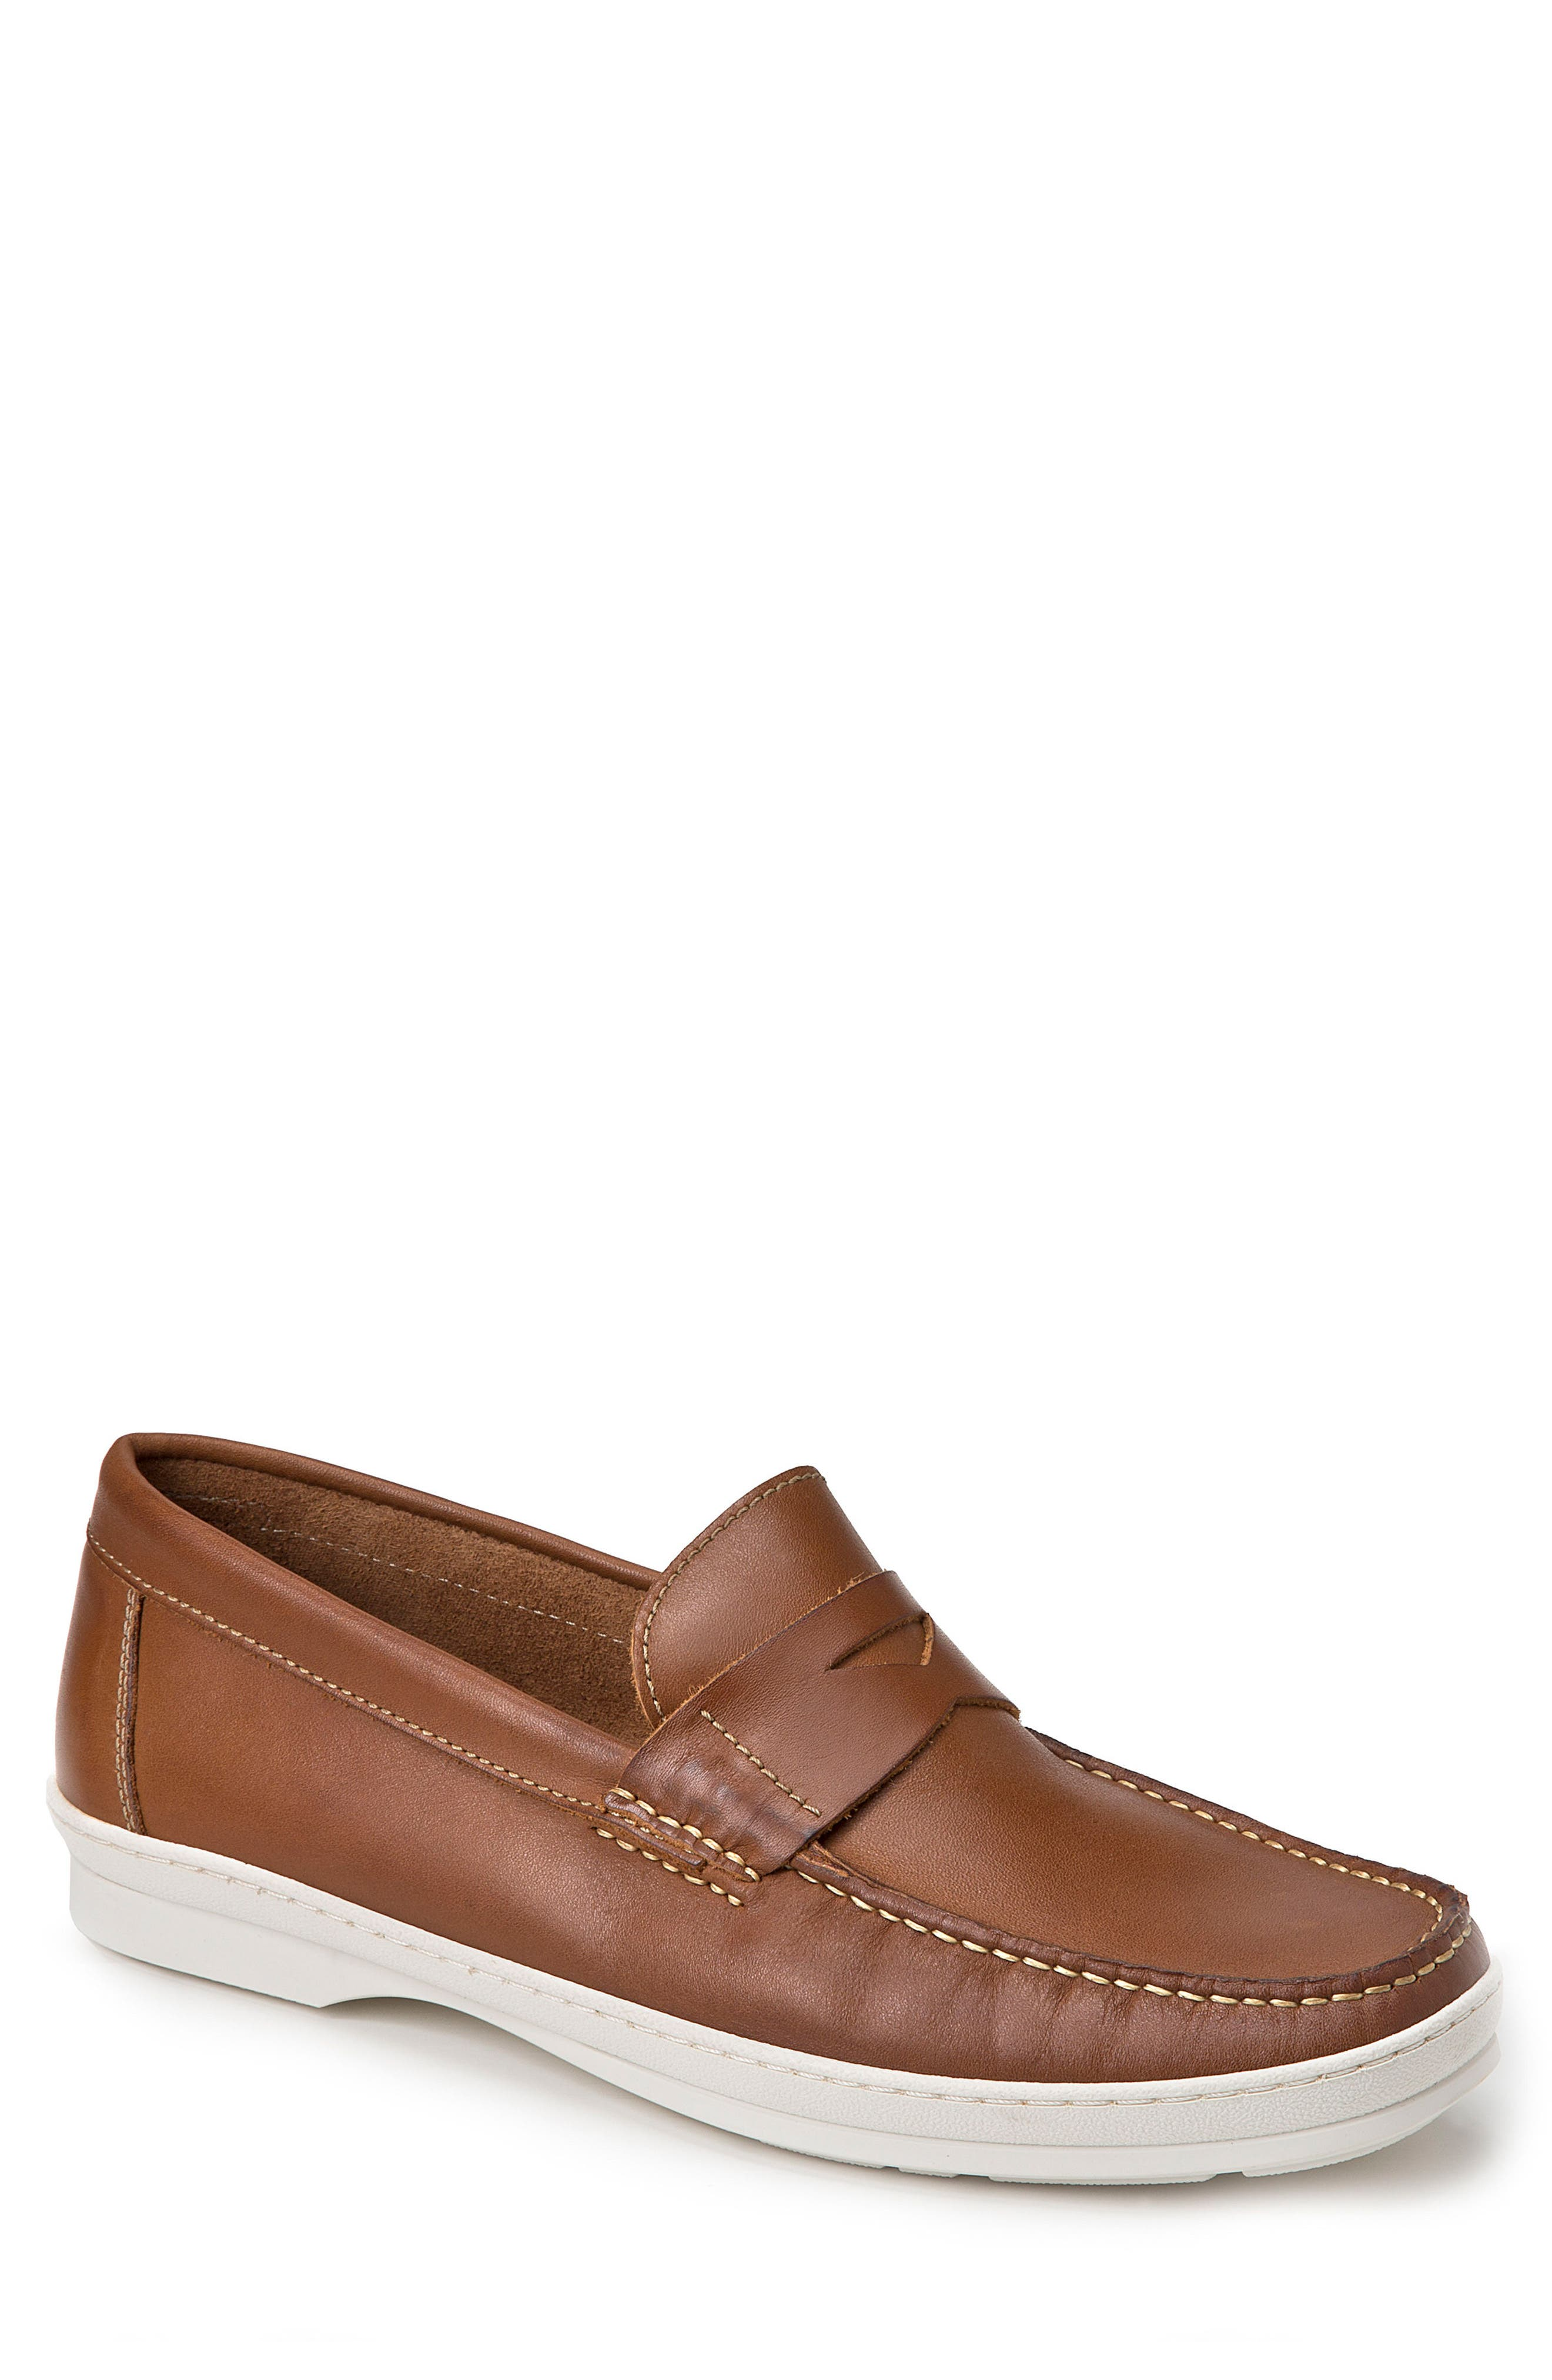 Simon Penny Loafer,                         Main,                         color, 230